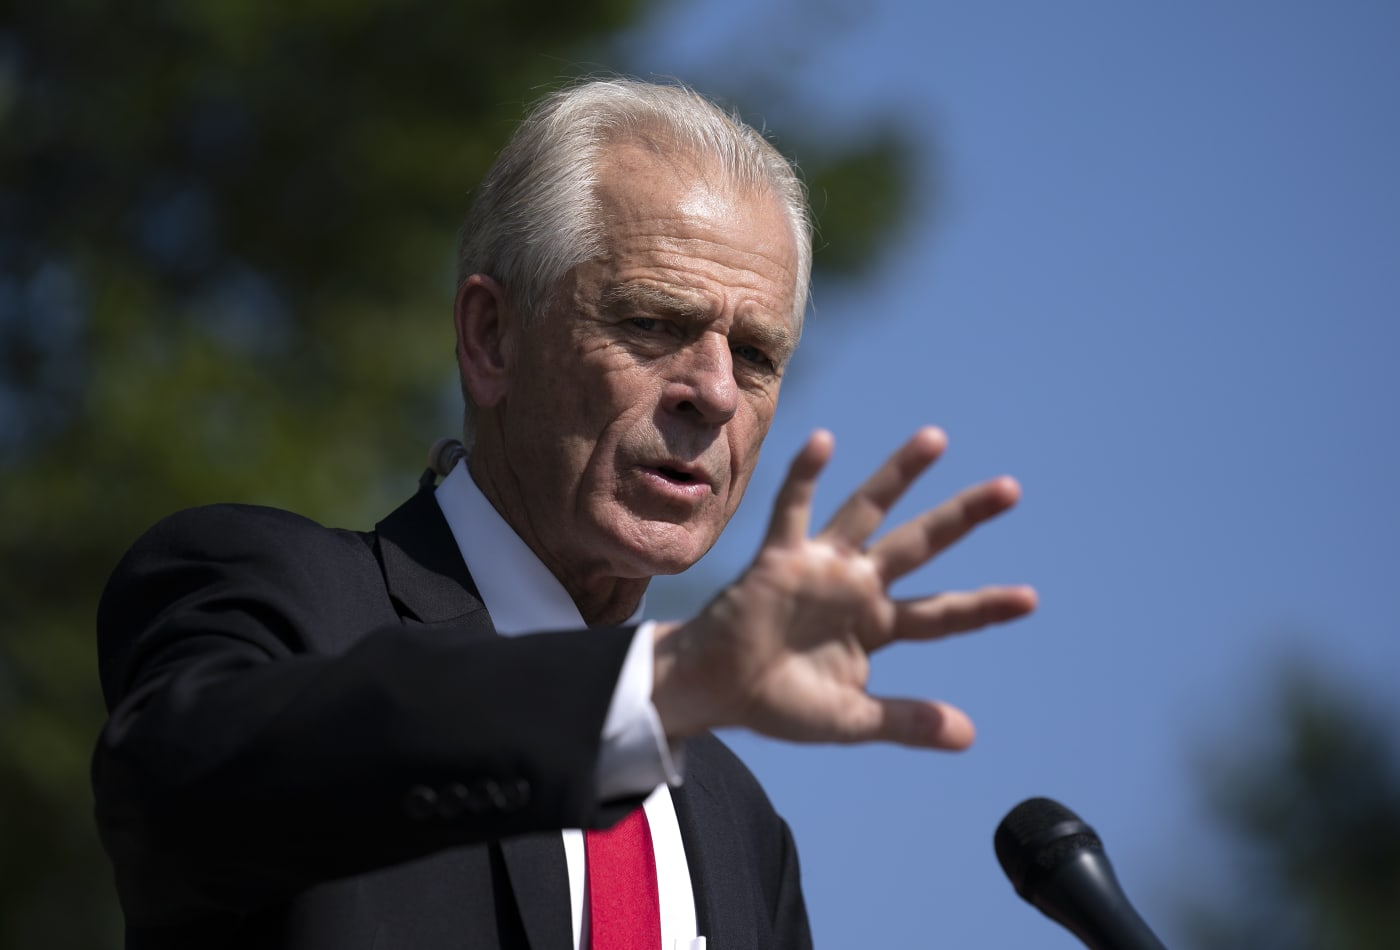 House panel opens probe of White House trade advisor Navarro after abrupt cancellation of ventilator contract